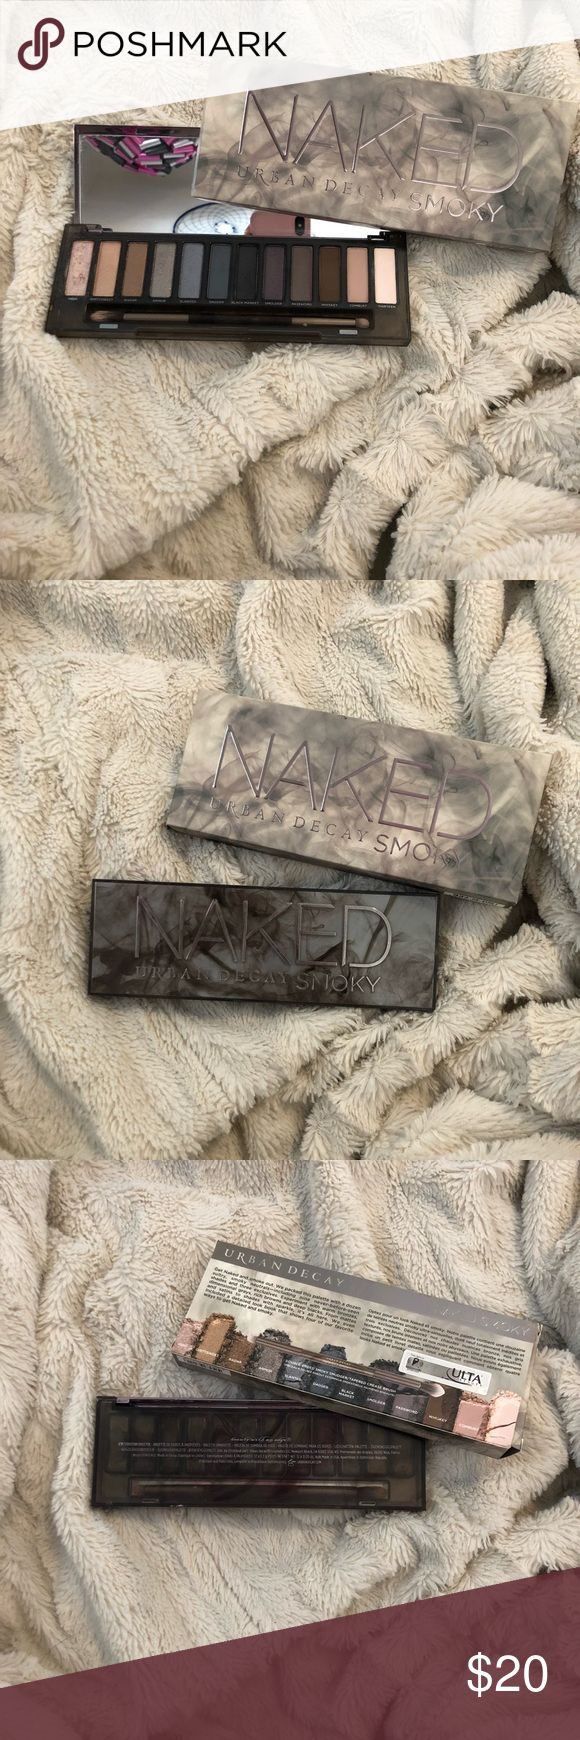 Urban Decay Naked Smoky eyeshadow palette very lightly used and i cleaned the brush it goes with Urban Decay Makeup Eyeshadow #cleanmakeupbrushes